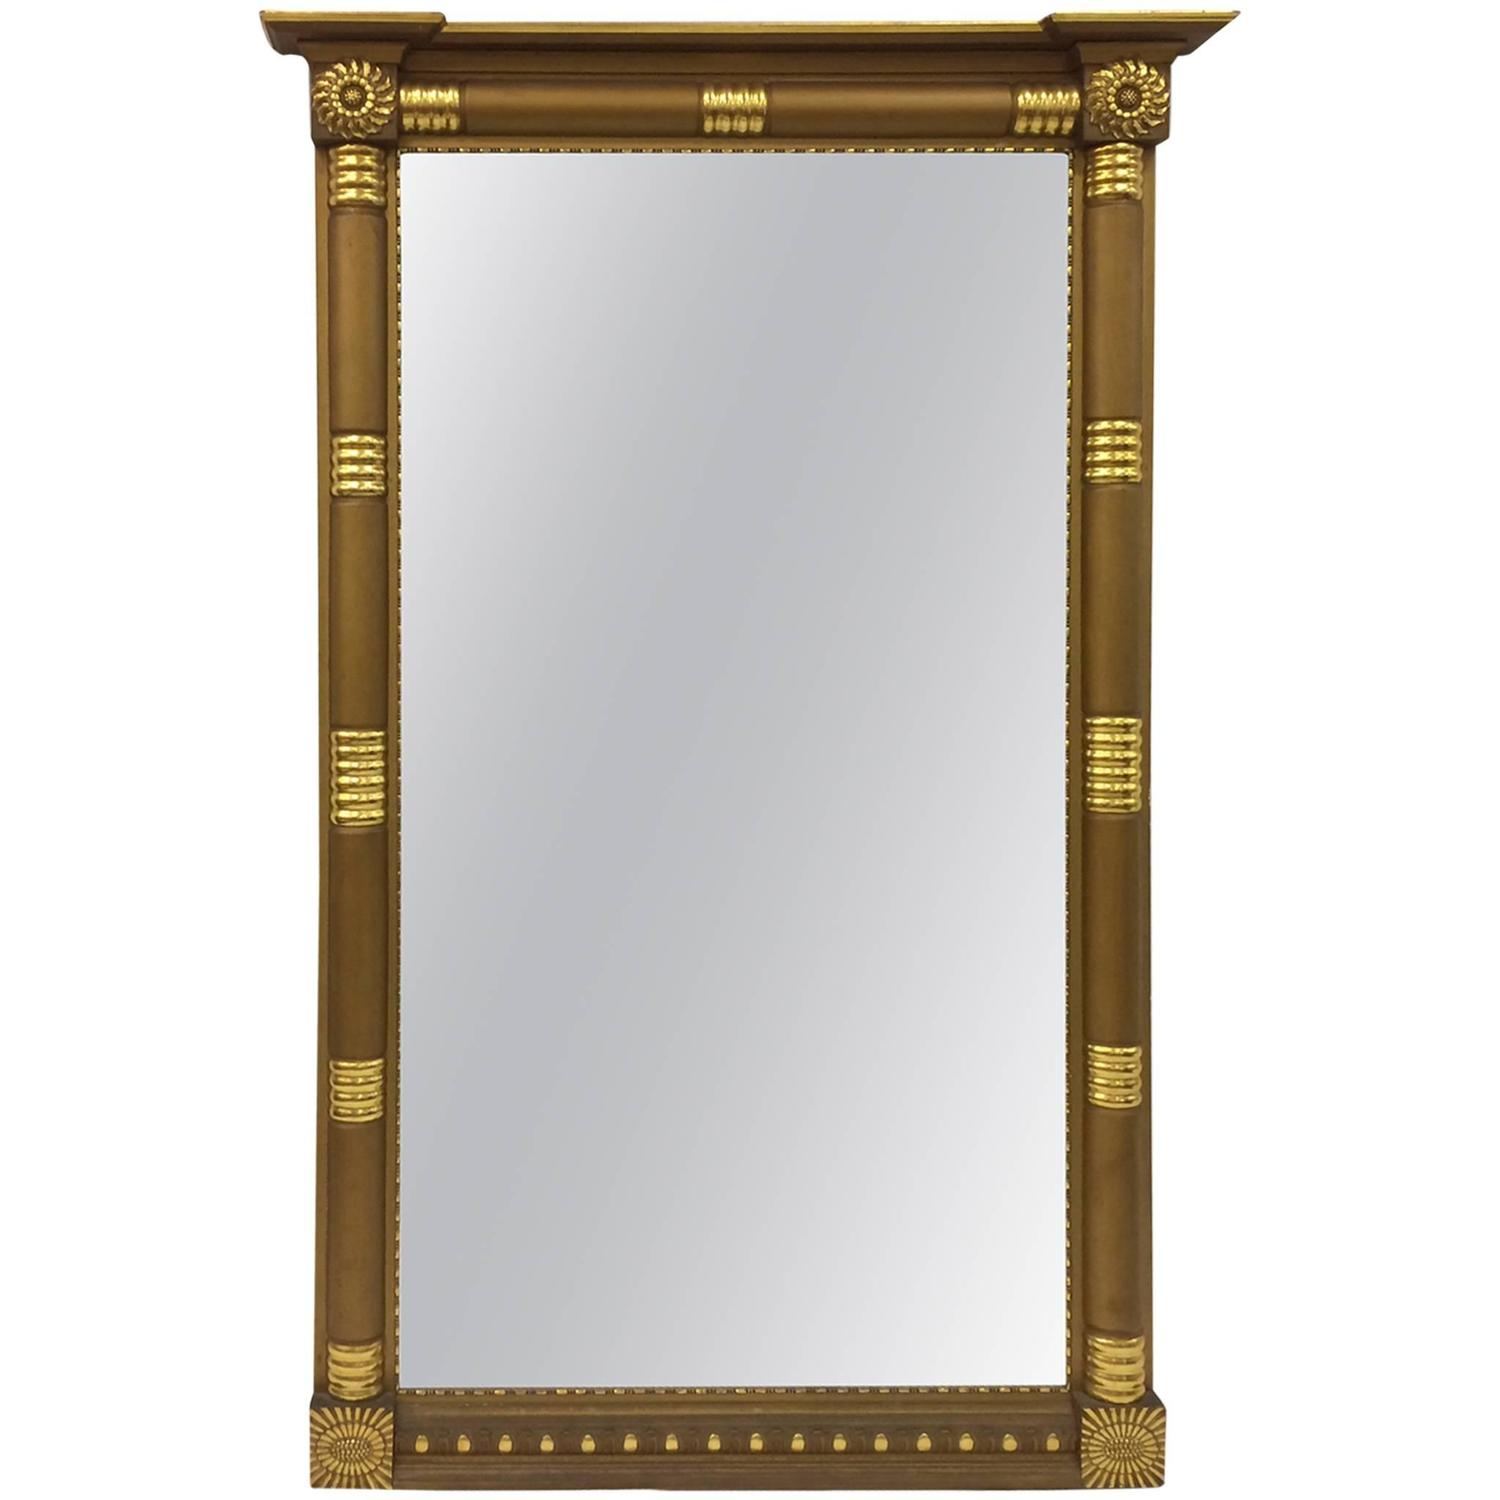 Very large early american gold wooden mantle mirror for Large wooden mirrors for sale